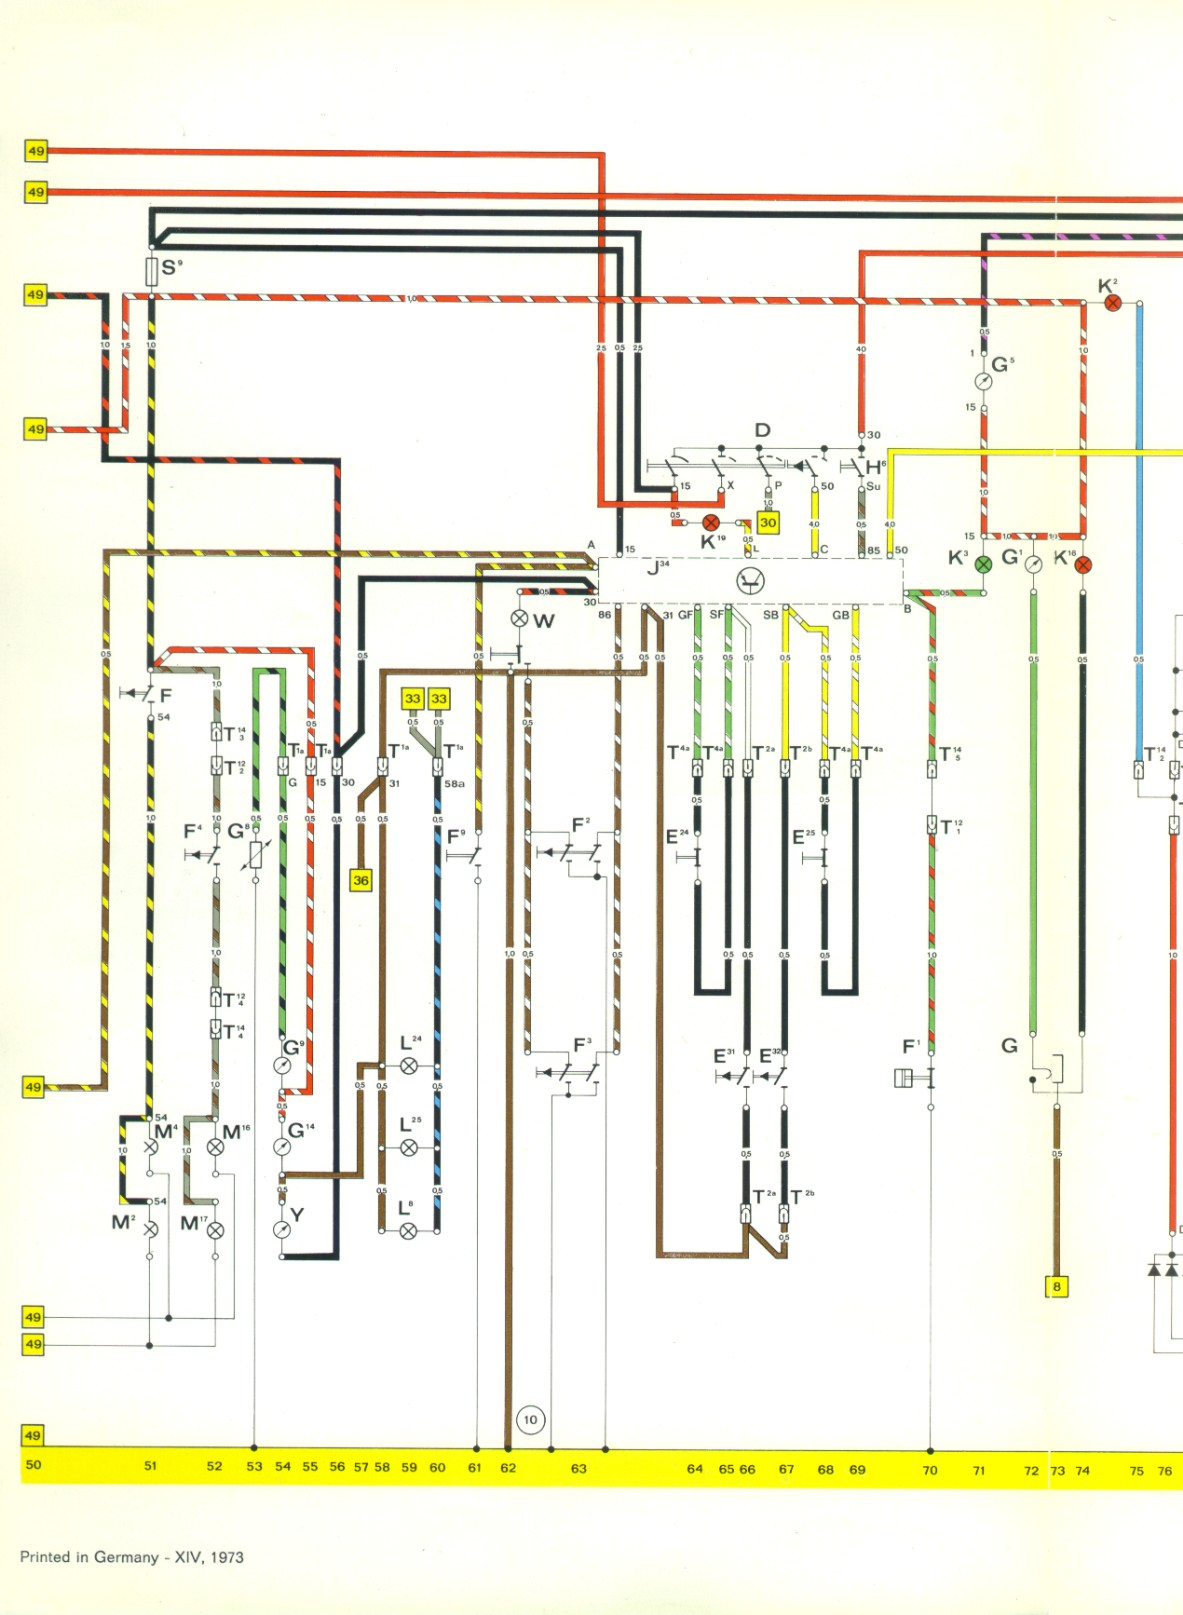 1974 porsche wiring diagram get free image about wiring diagram